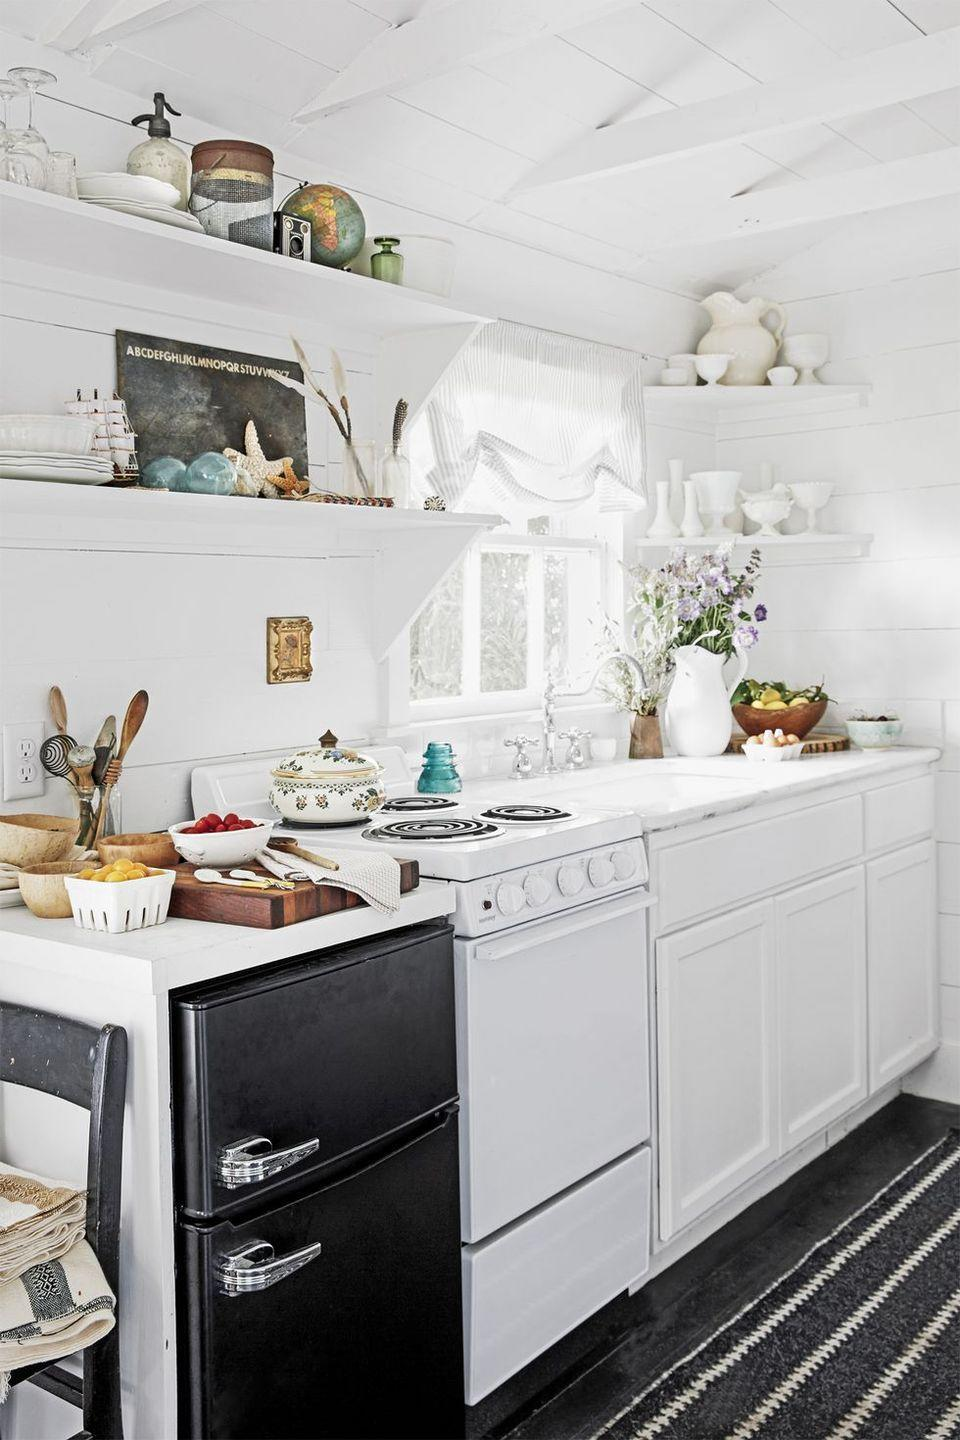 """<p>By sticking to a black-and-white color scheme, Paige makes her modestly sized kitchen appear much larger than it really is.</p><p><a class=""""link rapid-noclick-resp"""" href=""""https://www.amazon.com/Life-Changing-Magic-Tidying-Decluttering-Organizing/dp/1607747308?tag=syn-yahoo-20&ascsubtag=%5Bartid%7C10072.g.35047961%5Bsrc%7Cyahoo-us"""" rel=""""nofollow noopener"""" target=""""_blank"""" data-ylk=""""slk:SHOP TIDYING BOOKS"""">SHOP TIDYING BOOKS</a></p>"""